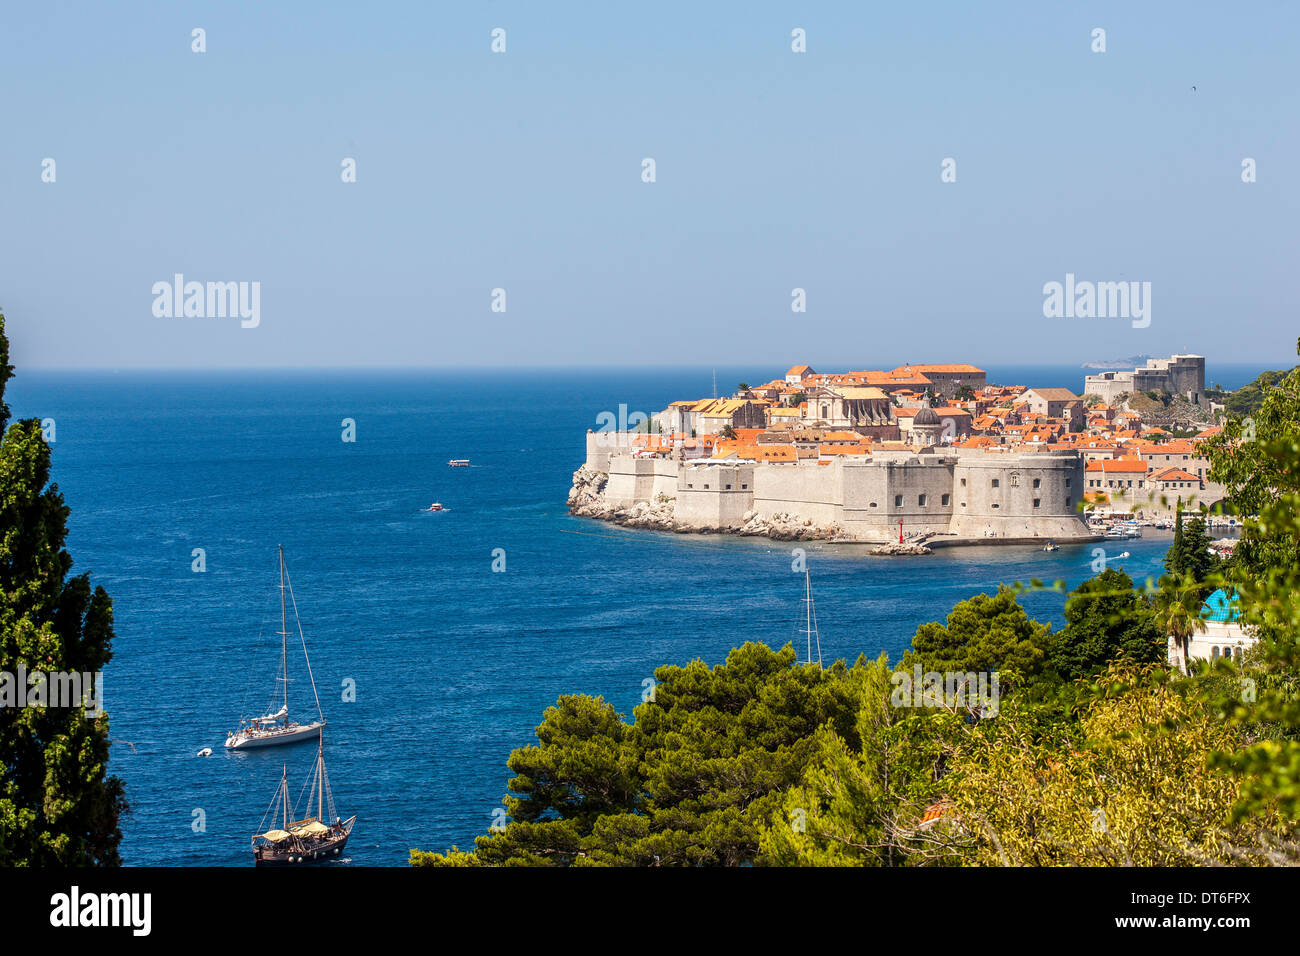 View of the mountain to the old town and Adriatic Sea - Stock Image